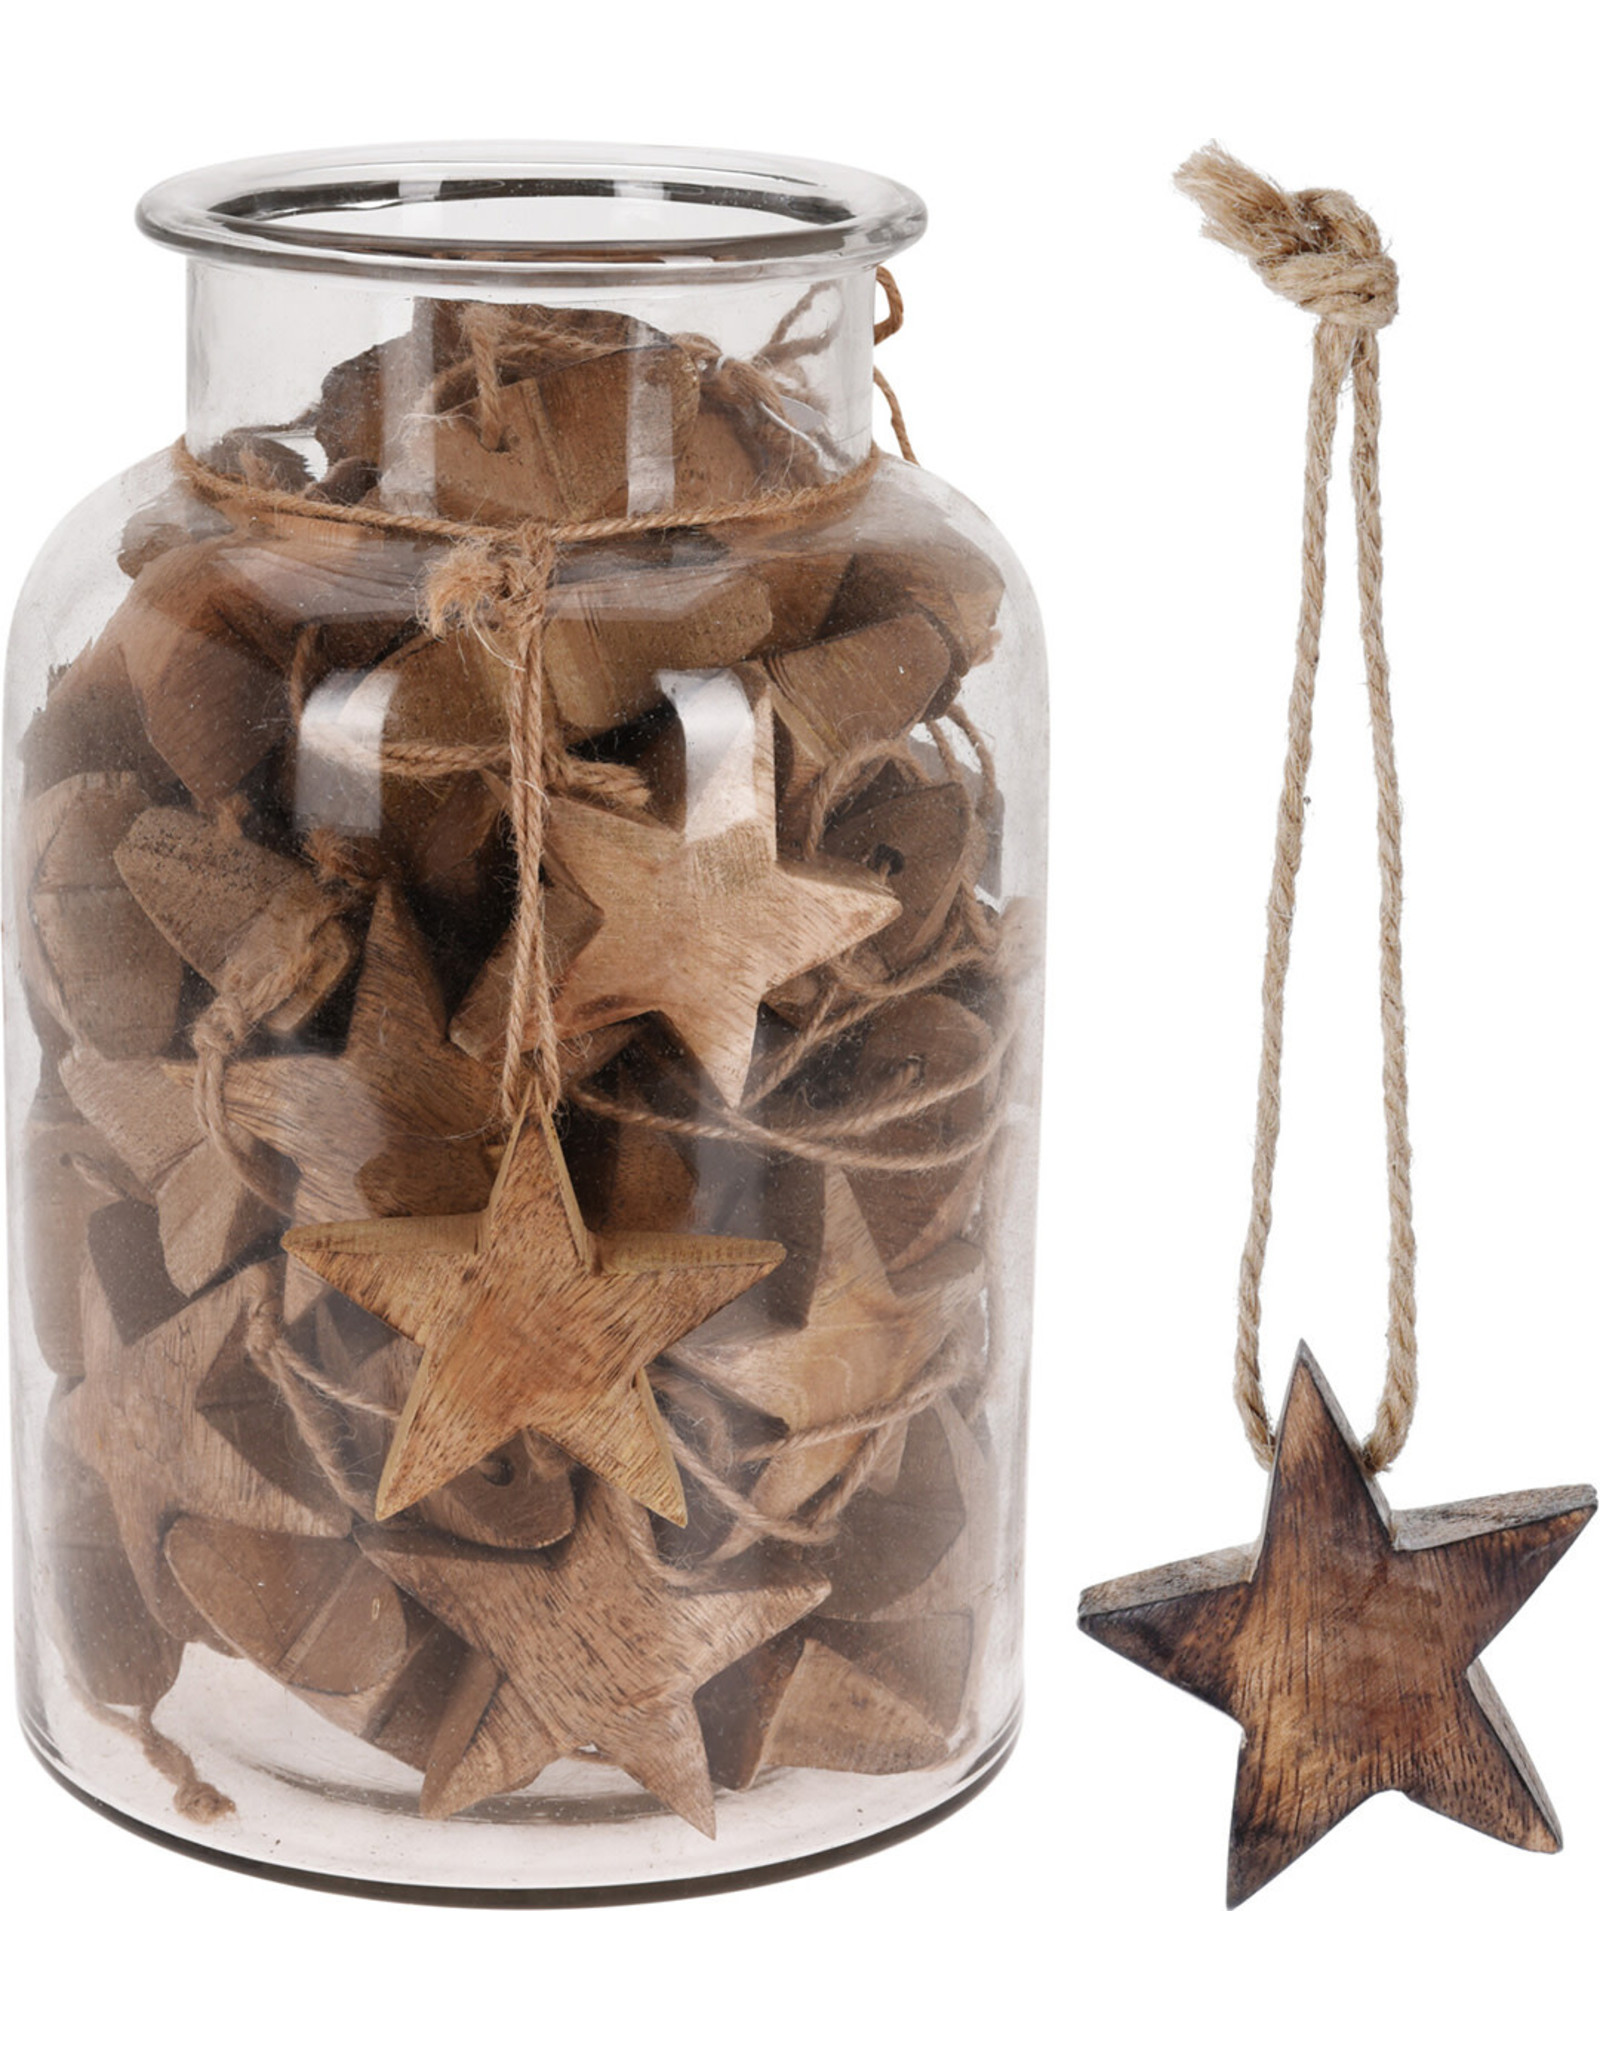 Koopman Hang Deco Star 6cm